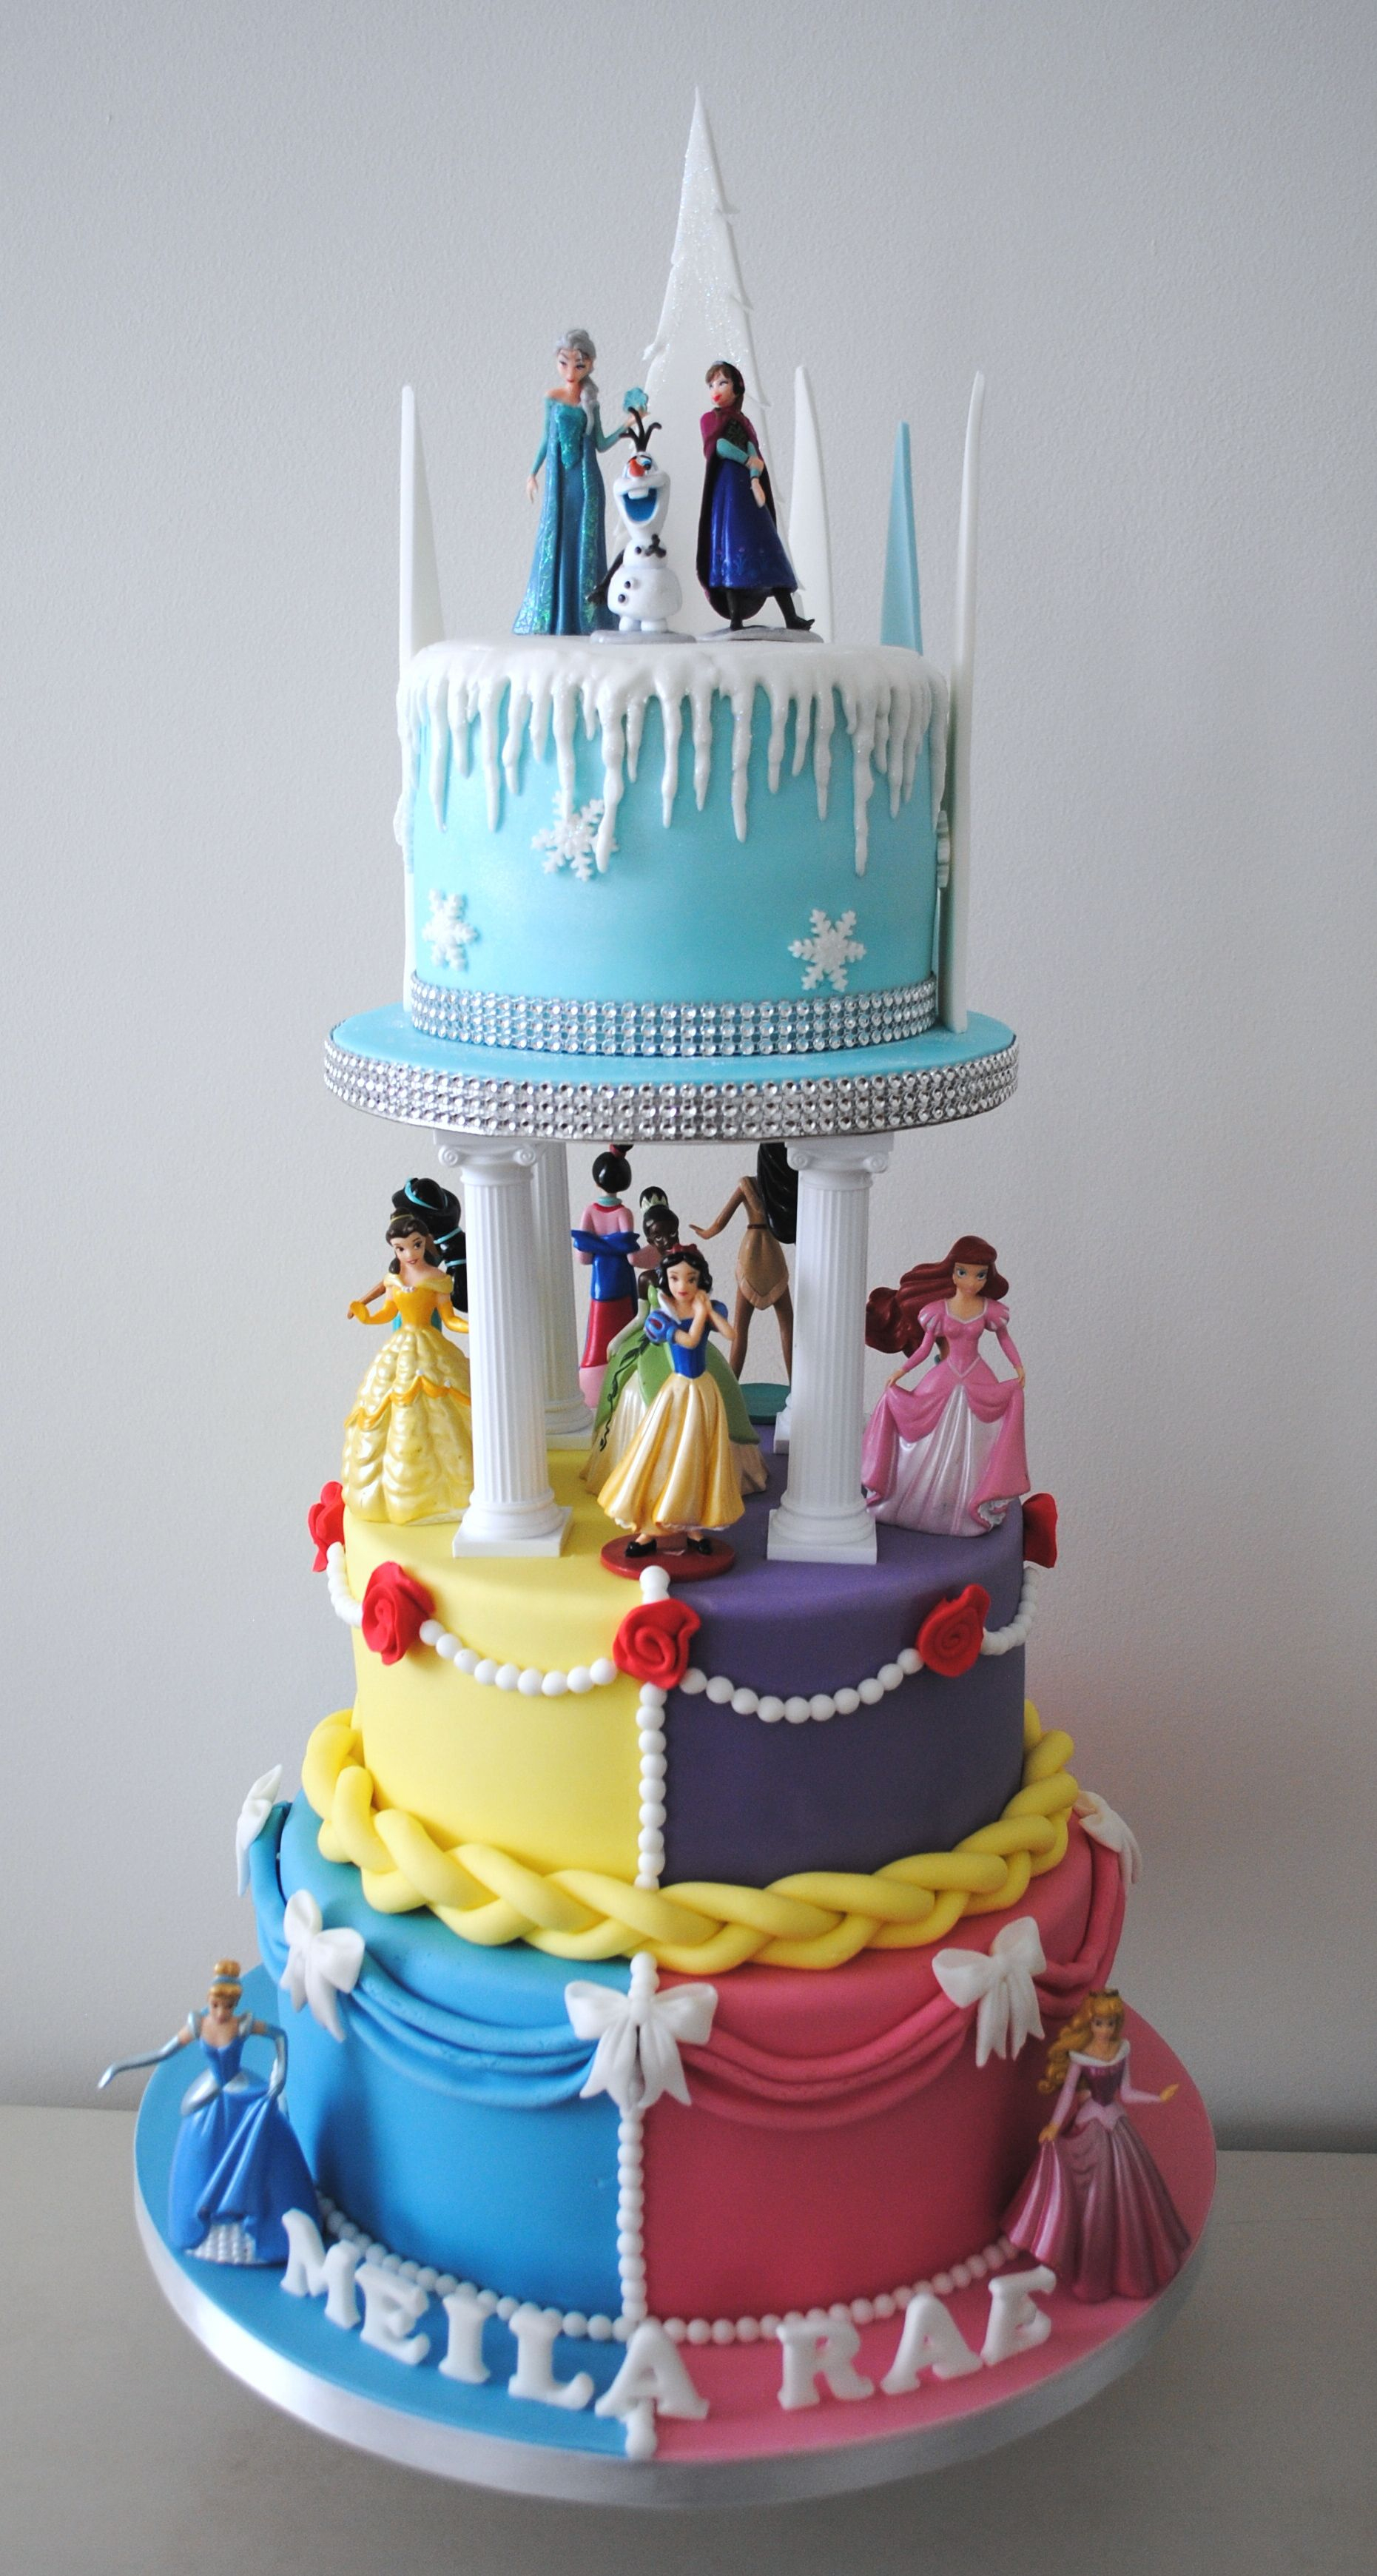 30 Great Image Of Disney Birthday Cake